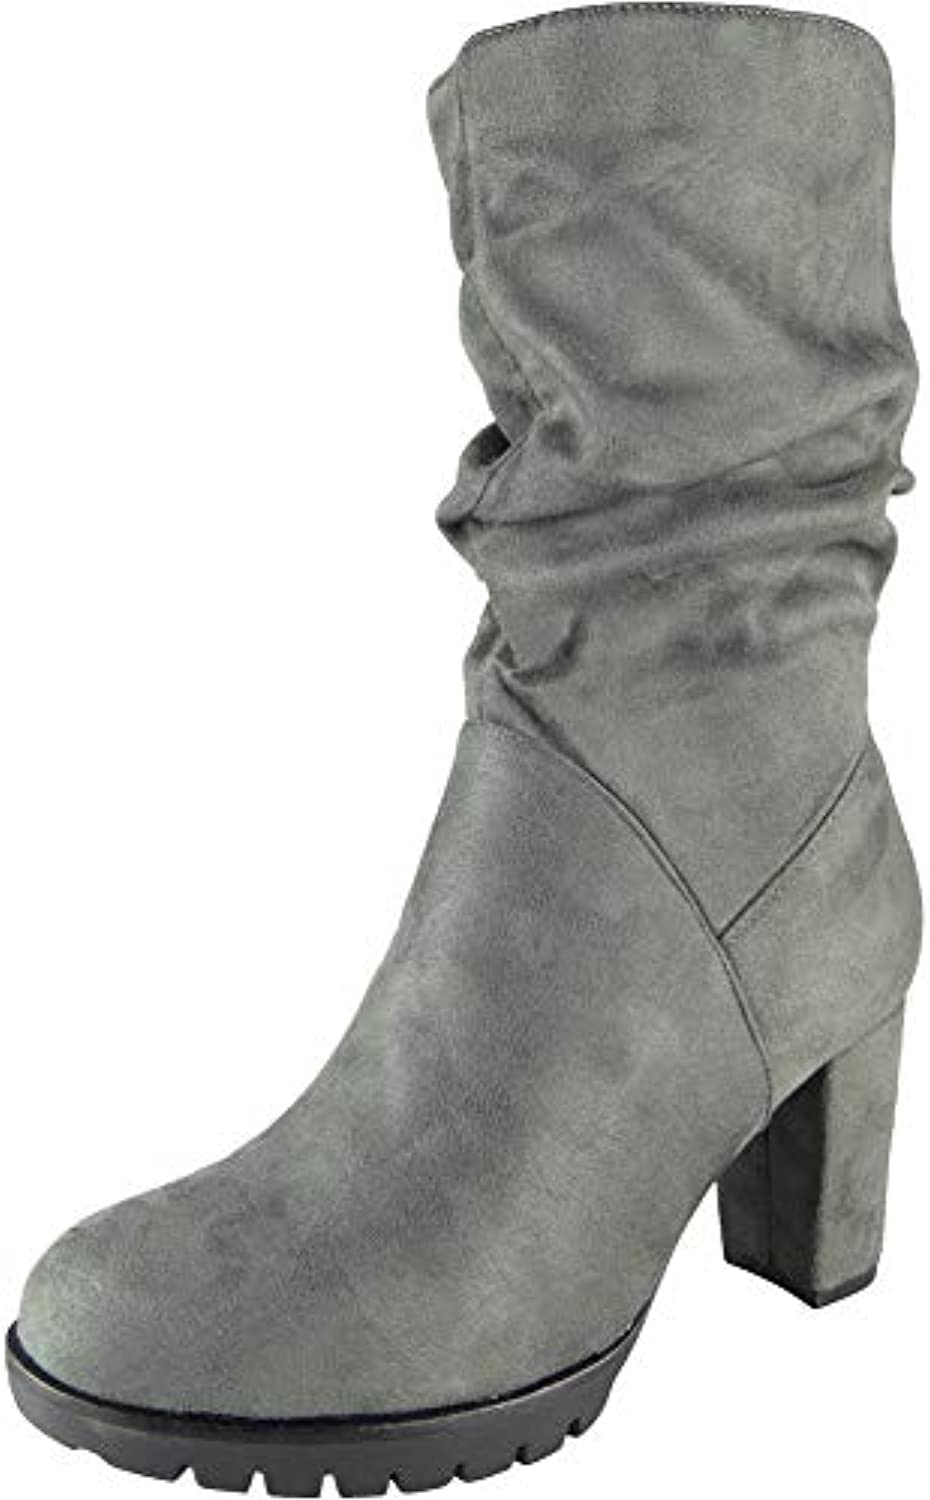 c38b361e4fd1 Womens Mid Calf Rouched Boots Faux Suede Grip Sole Fashion Fashion Fashion  Zip Casual Ladie Size